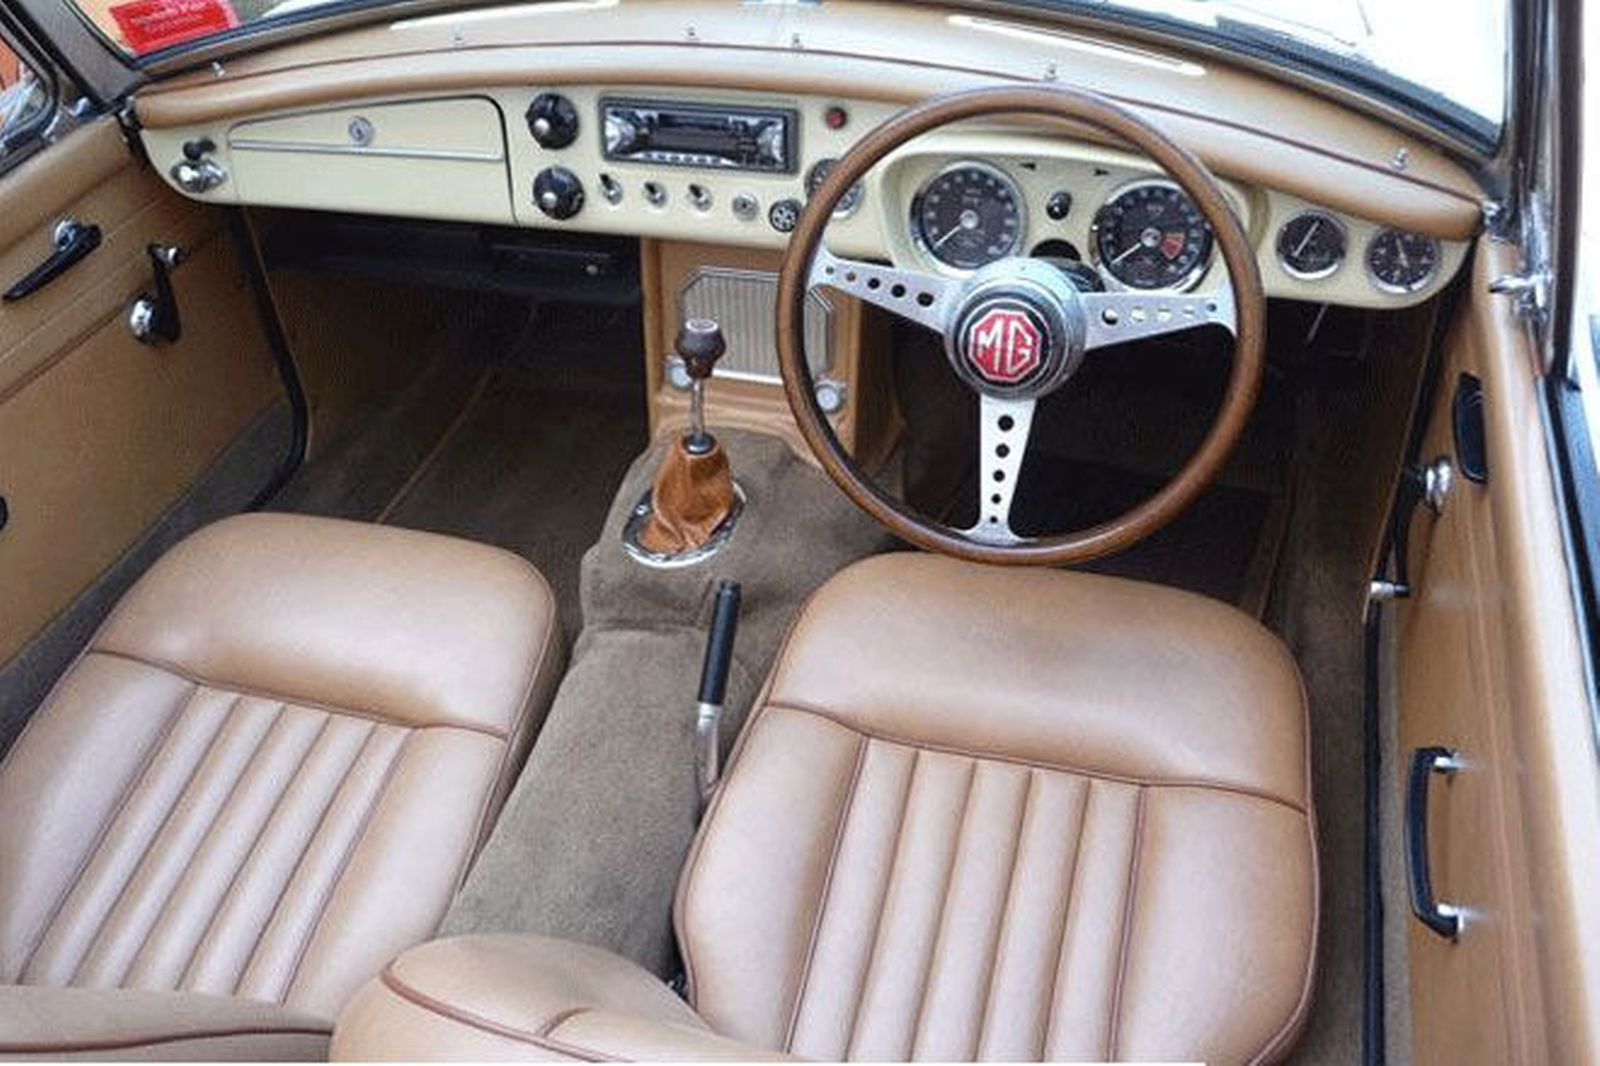 Sold Mgb Mk1 Roadster Auctions Lot 4 Shannons Classic Carpets Patterned Carpet Best Carpet For Stairs